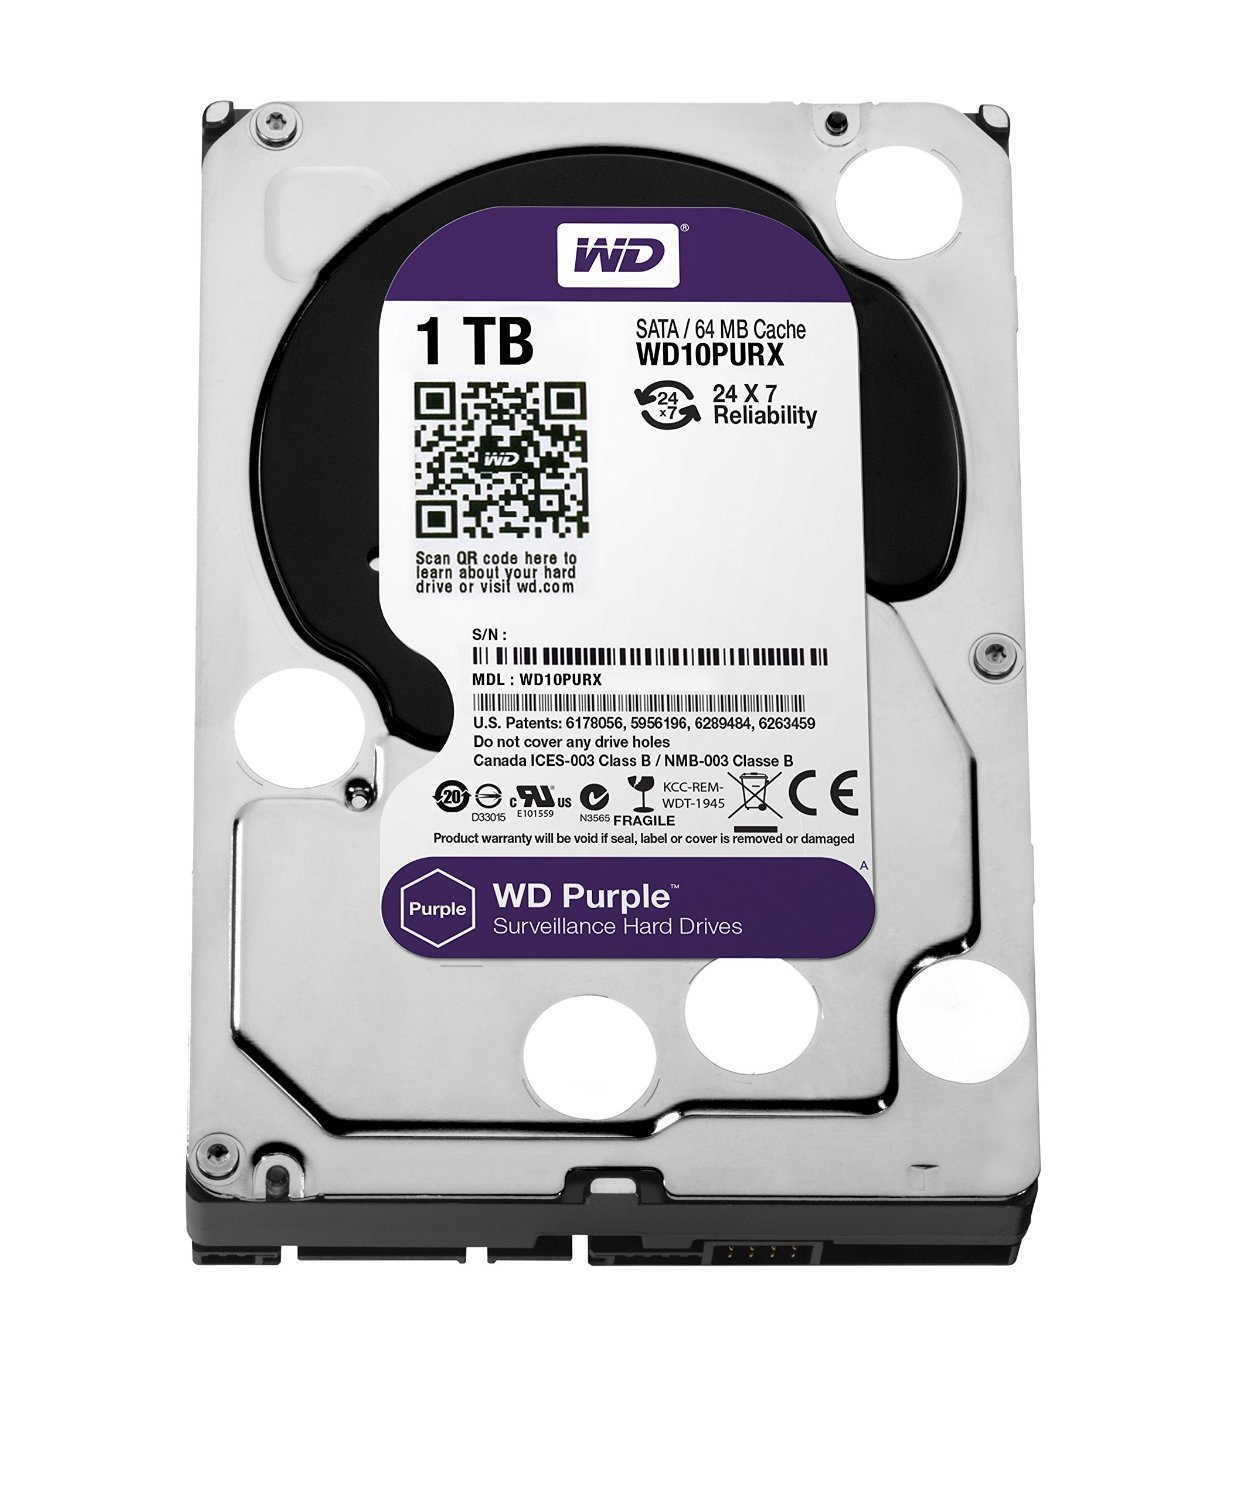 WD Purple 1TB Surveillance Hard Disk Drive - 5400 RPM Class SATA 6 Gb/s 64MB Cache 3.5 Inch - WD10PURX [Old Version] (Certified Refurbished) by Western Digital